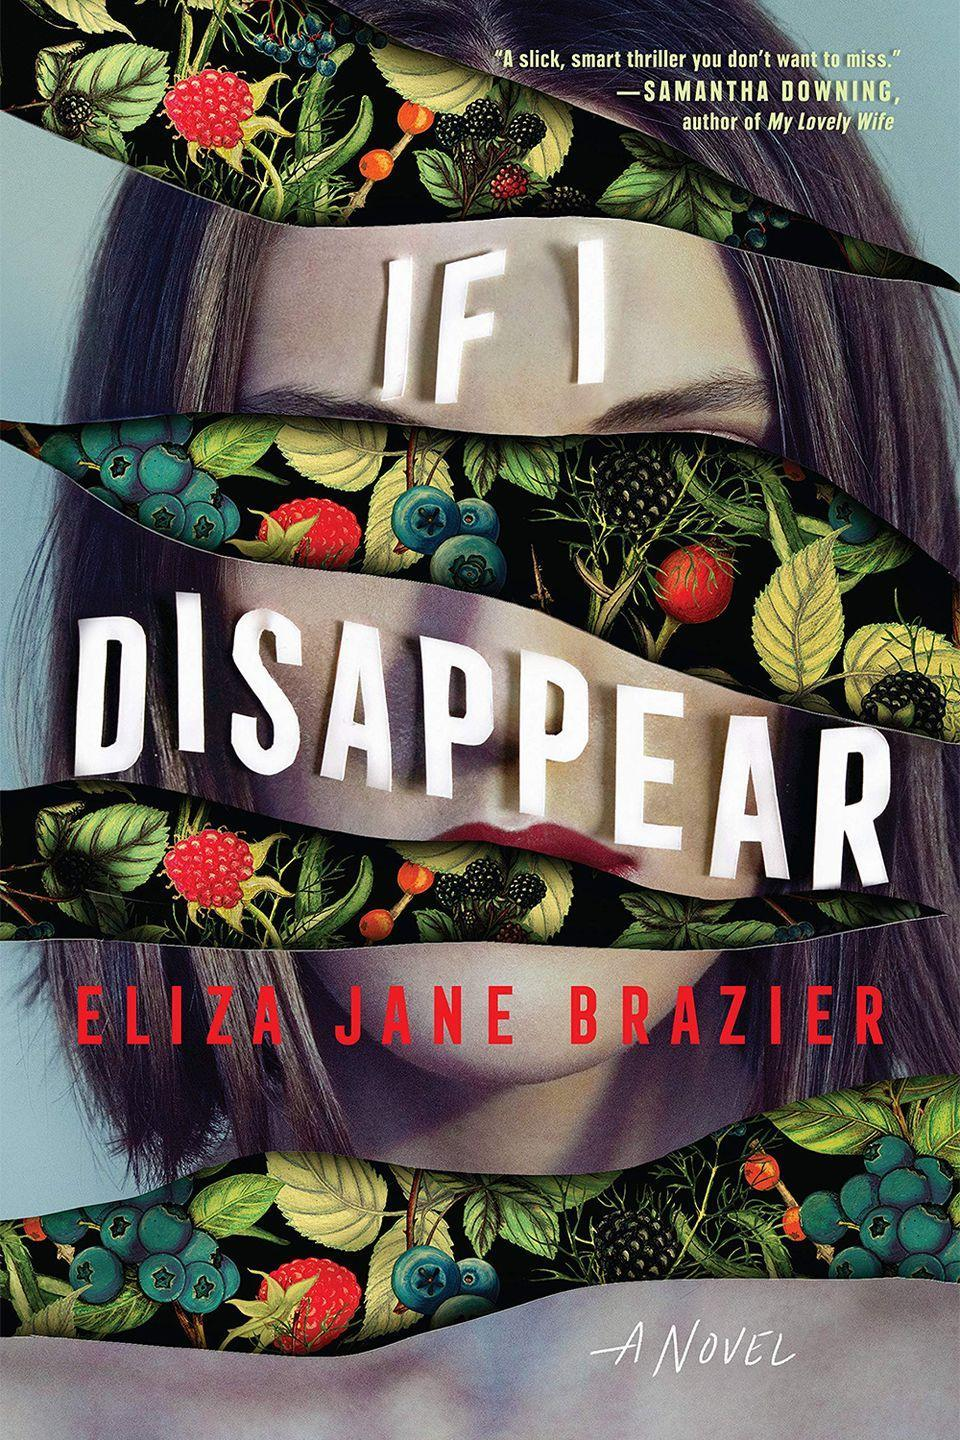 """<p>After a miscarriage and a divorce, Sera is all alone in the world, with only the podcast <em>Murder, She Spoke</em> for company. She listens to it so obsessively that she's started to think of its host, Rachel Bard, as her closest—and maybe only—friend. So, when Rachel suddenly goes missing, Sera takes it upon herself to find her. An eerie, twisted thriller sure to shake up the most seasoned true crime die-hard, <em>If I Disappear</em> marks Eliza Jane Brazier as one to watch. (We're already eagerly anticipating her second novel, <em>Good Rich People</em>, out in January of 2022.)</p><p><a class=""""link rapid-noclick-resp"""" href=""""https://www.amazon.com/If-Disappear-Eliza-Jane-Brazier/dp/0593198220/ref=sr_1_1?dchild=1&keywords=If+I+Disappear&qid=1633017556&s=books&sr=1-1&tag=syn-yahoo-20&ascsubtag=%5Bartid%7C10056.g.37805016%5Bsrc%7Cyahoo-us"""" rel=""""nofollow noopener"""" target=""""_blank"""" data-ylk=""""slk:BUY NOW"""">BUY NOW</a></p>"""